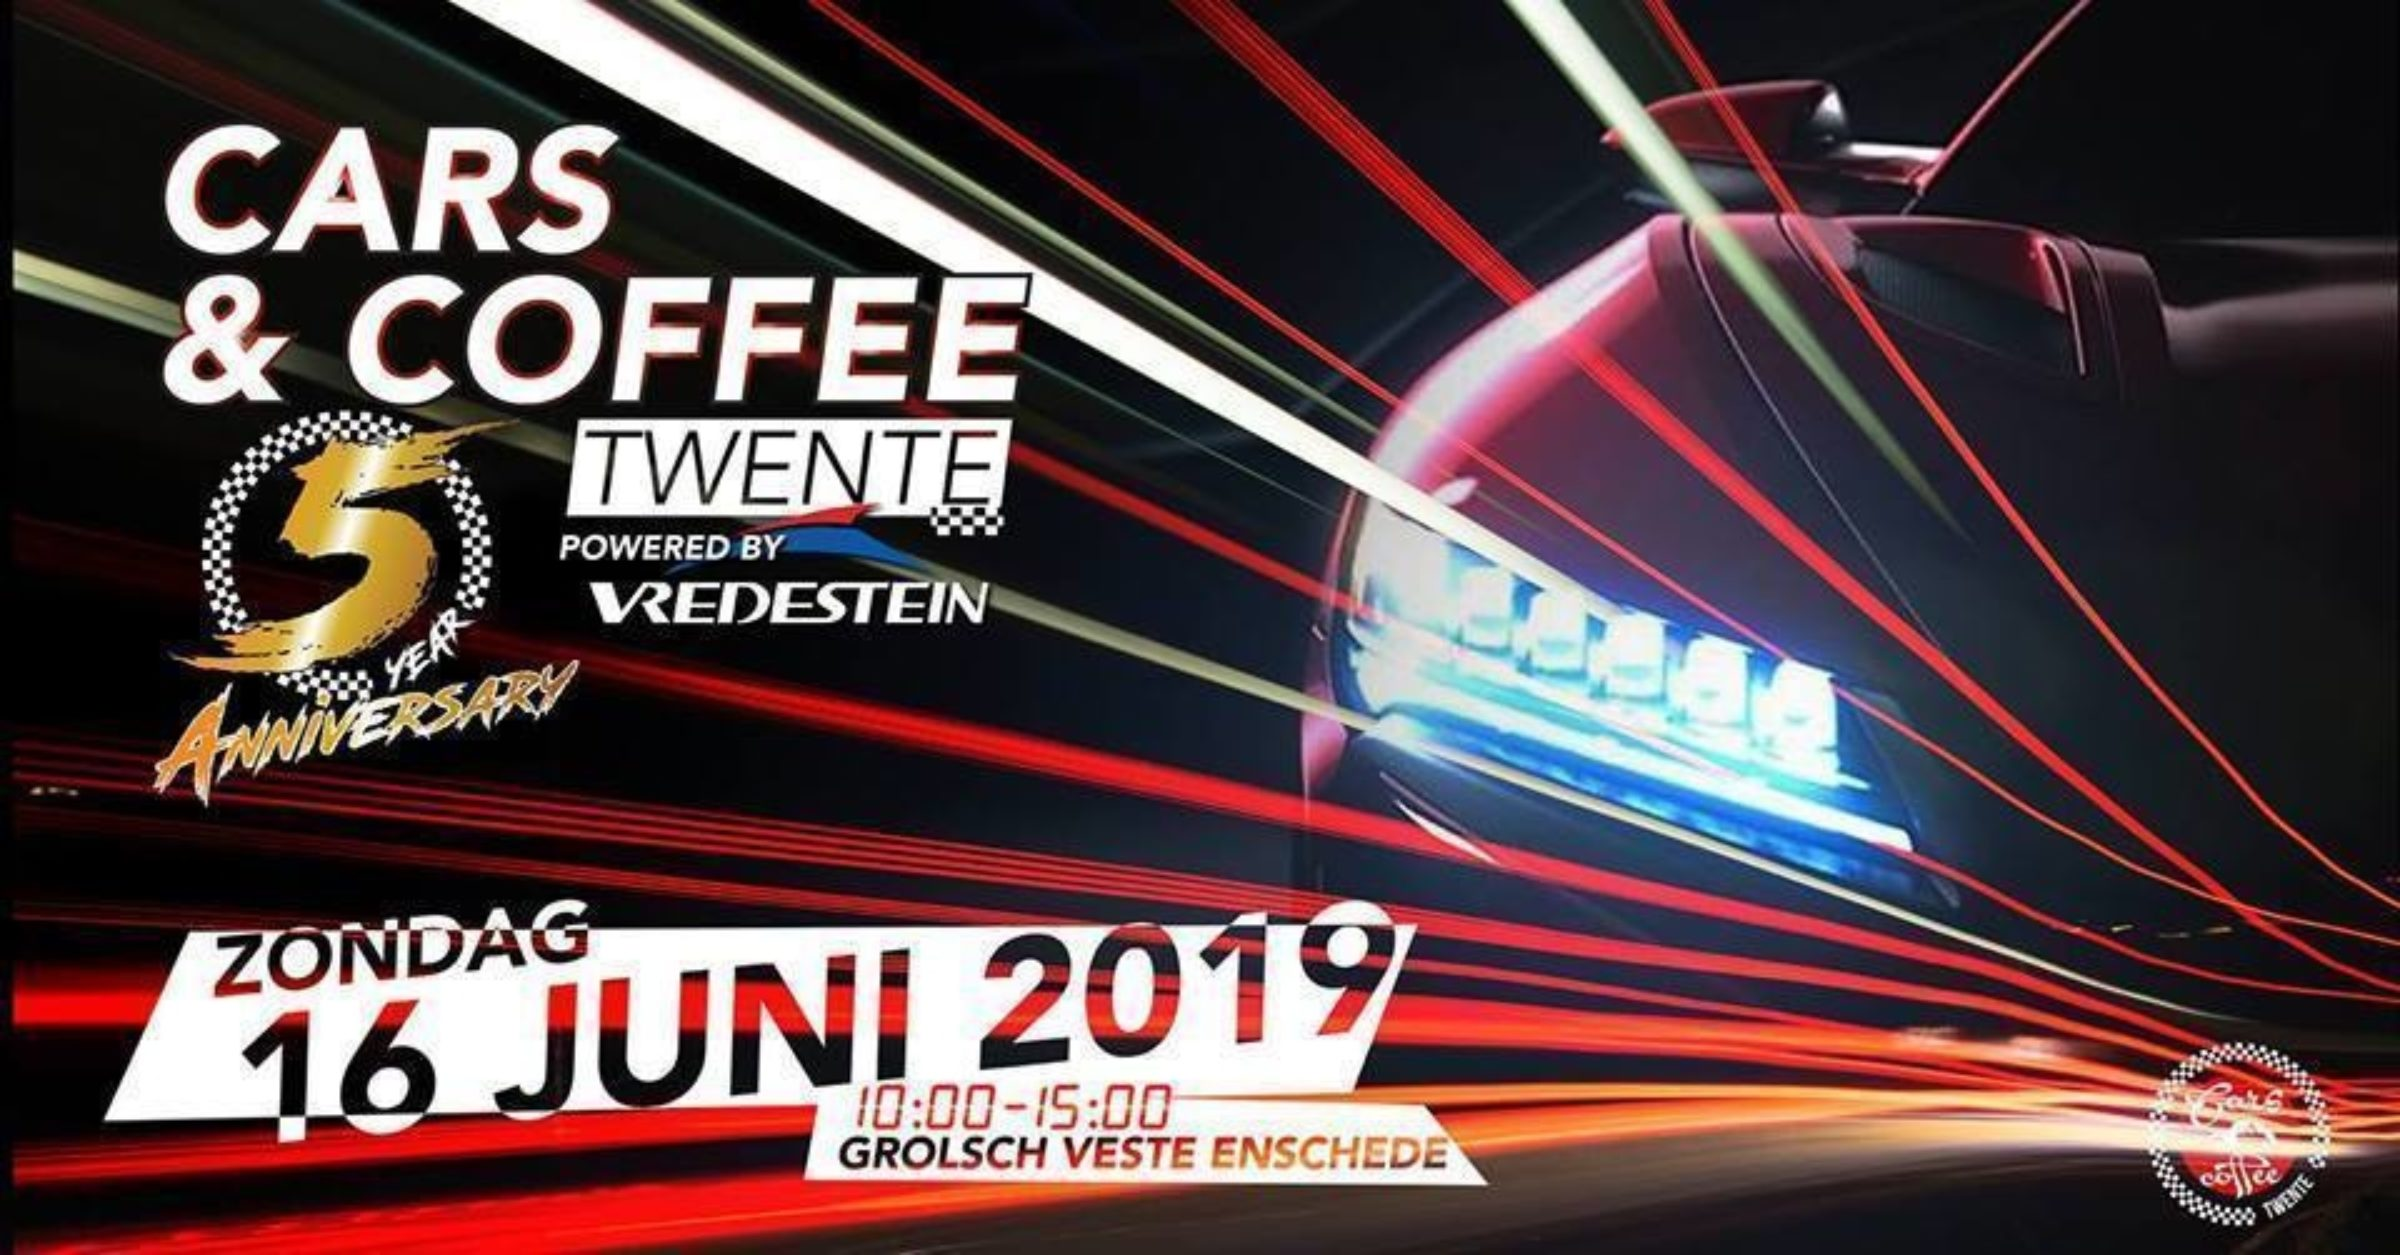 Cars coffee twente 3127 1559641657 35hxj6m33n